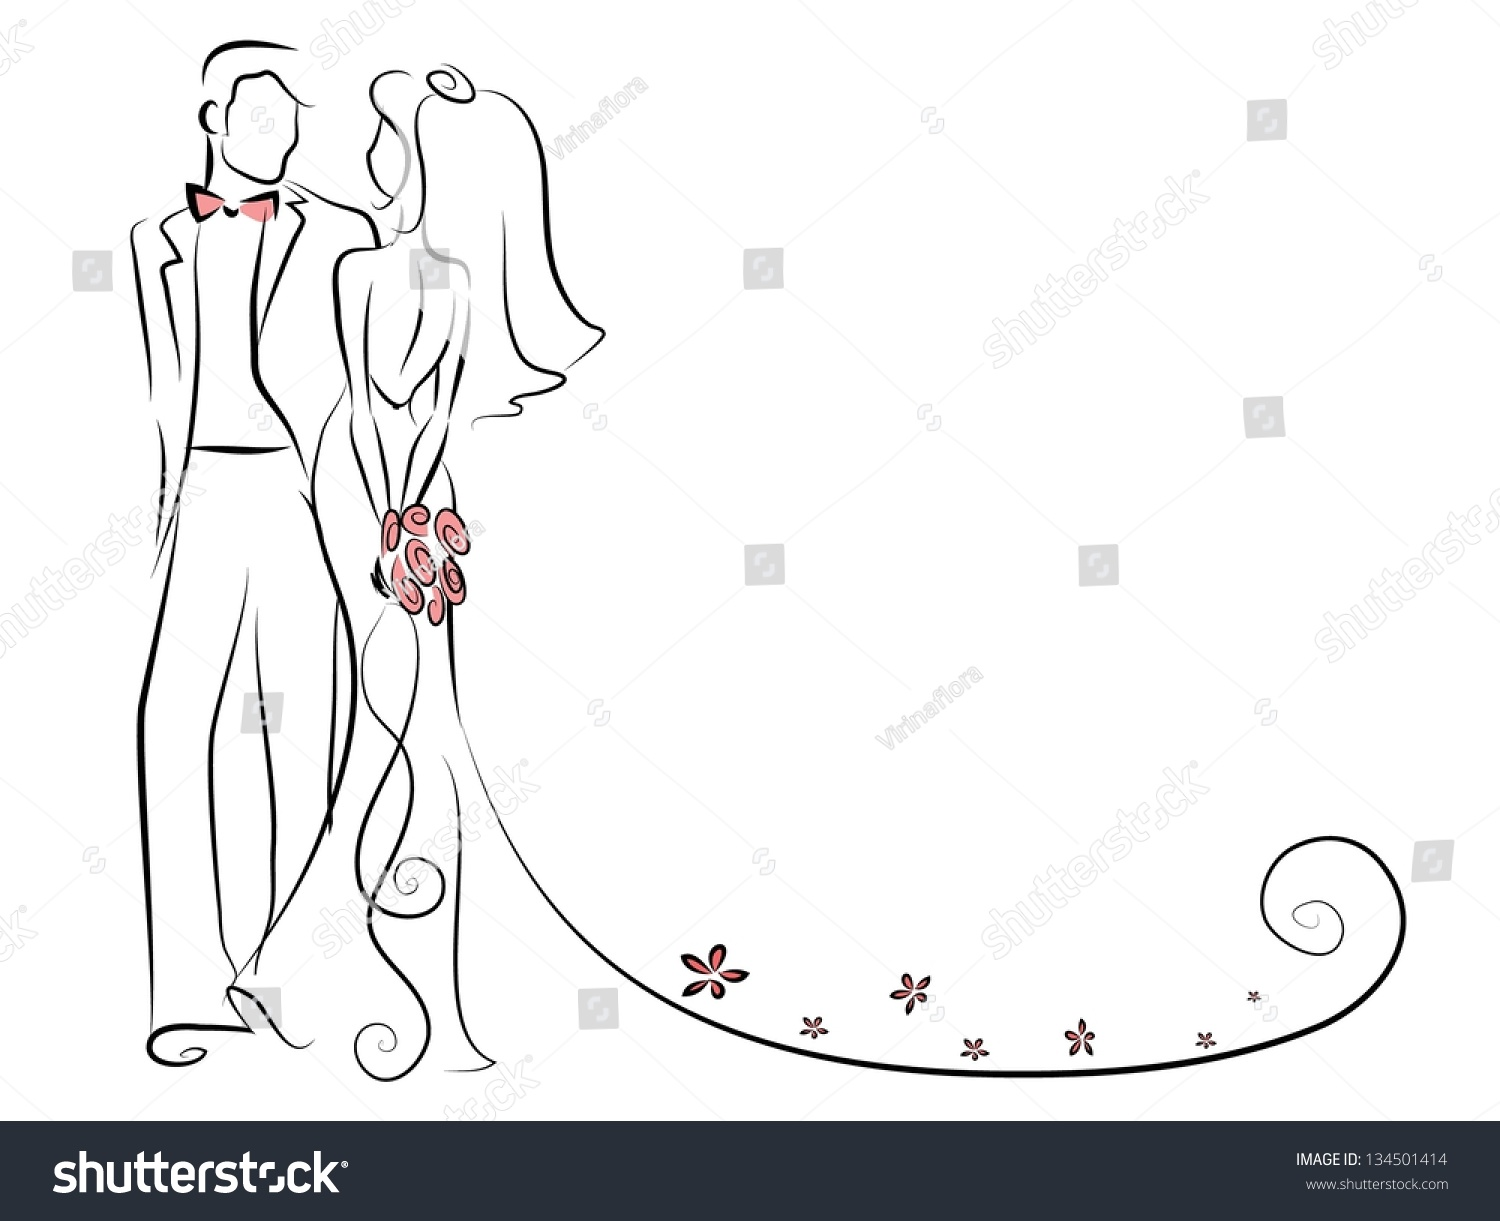 Silhouette Bride Groom Background Wedding Invitation Stock Vector HD